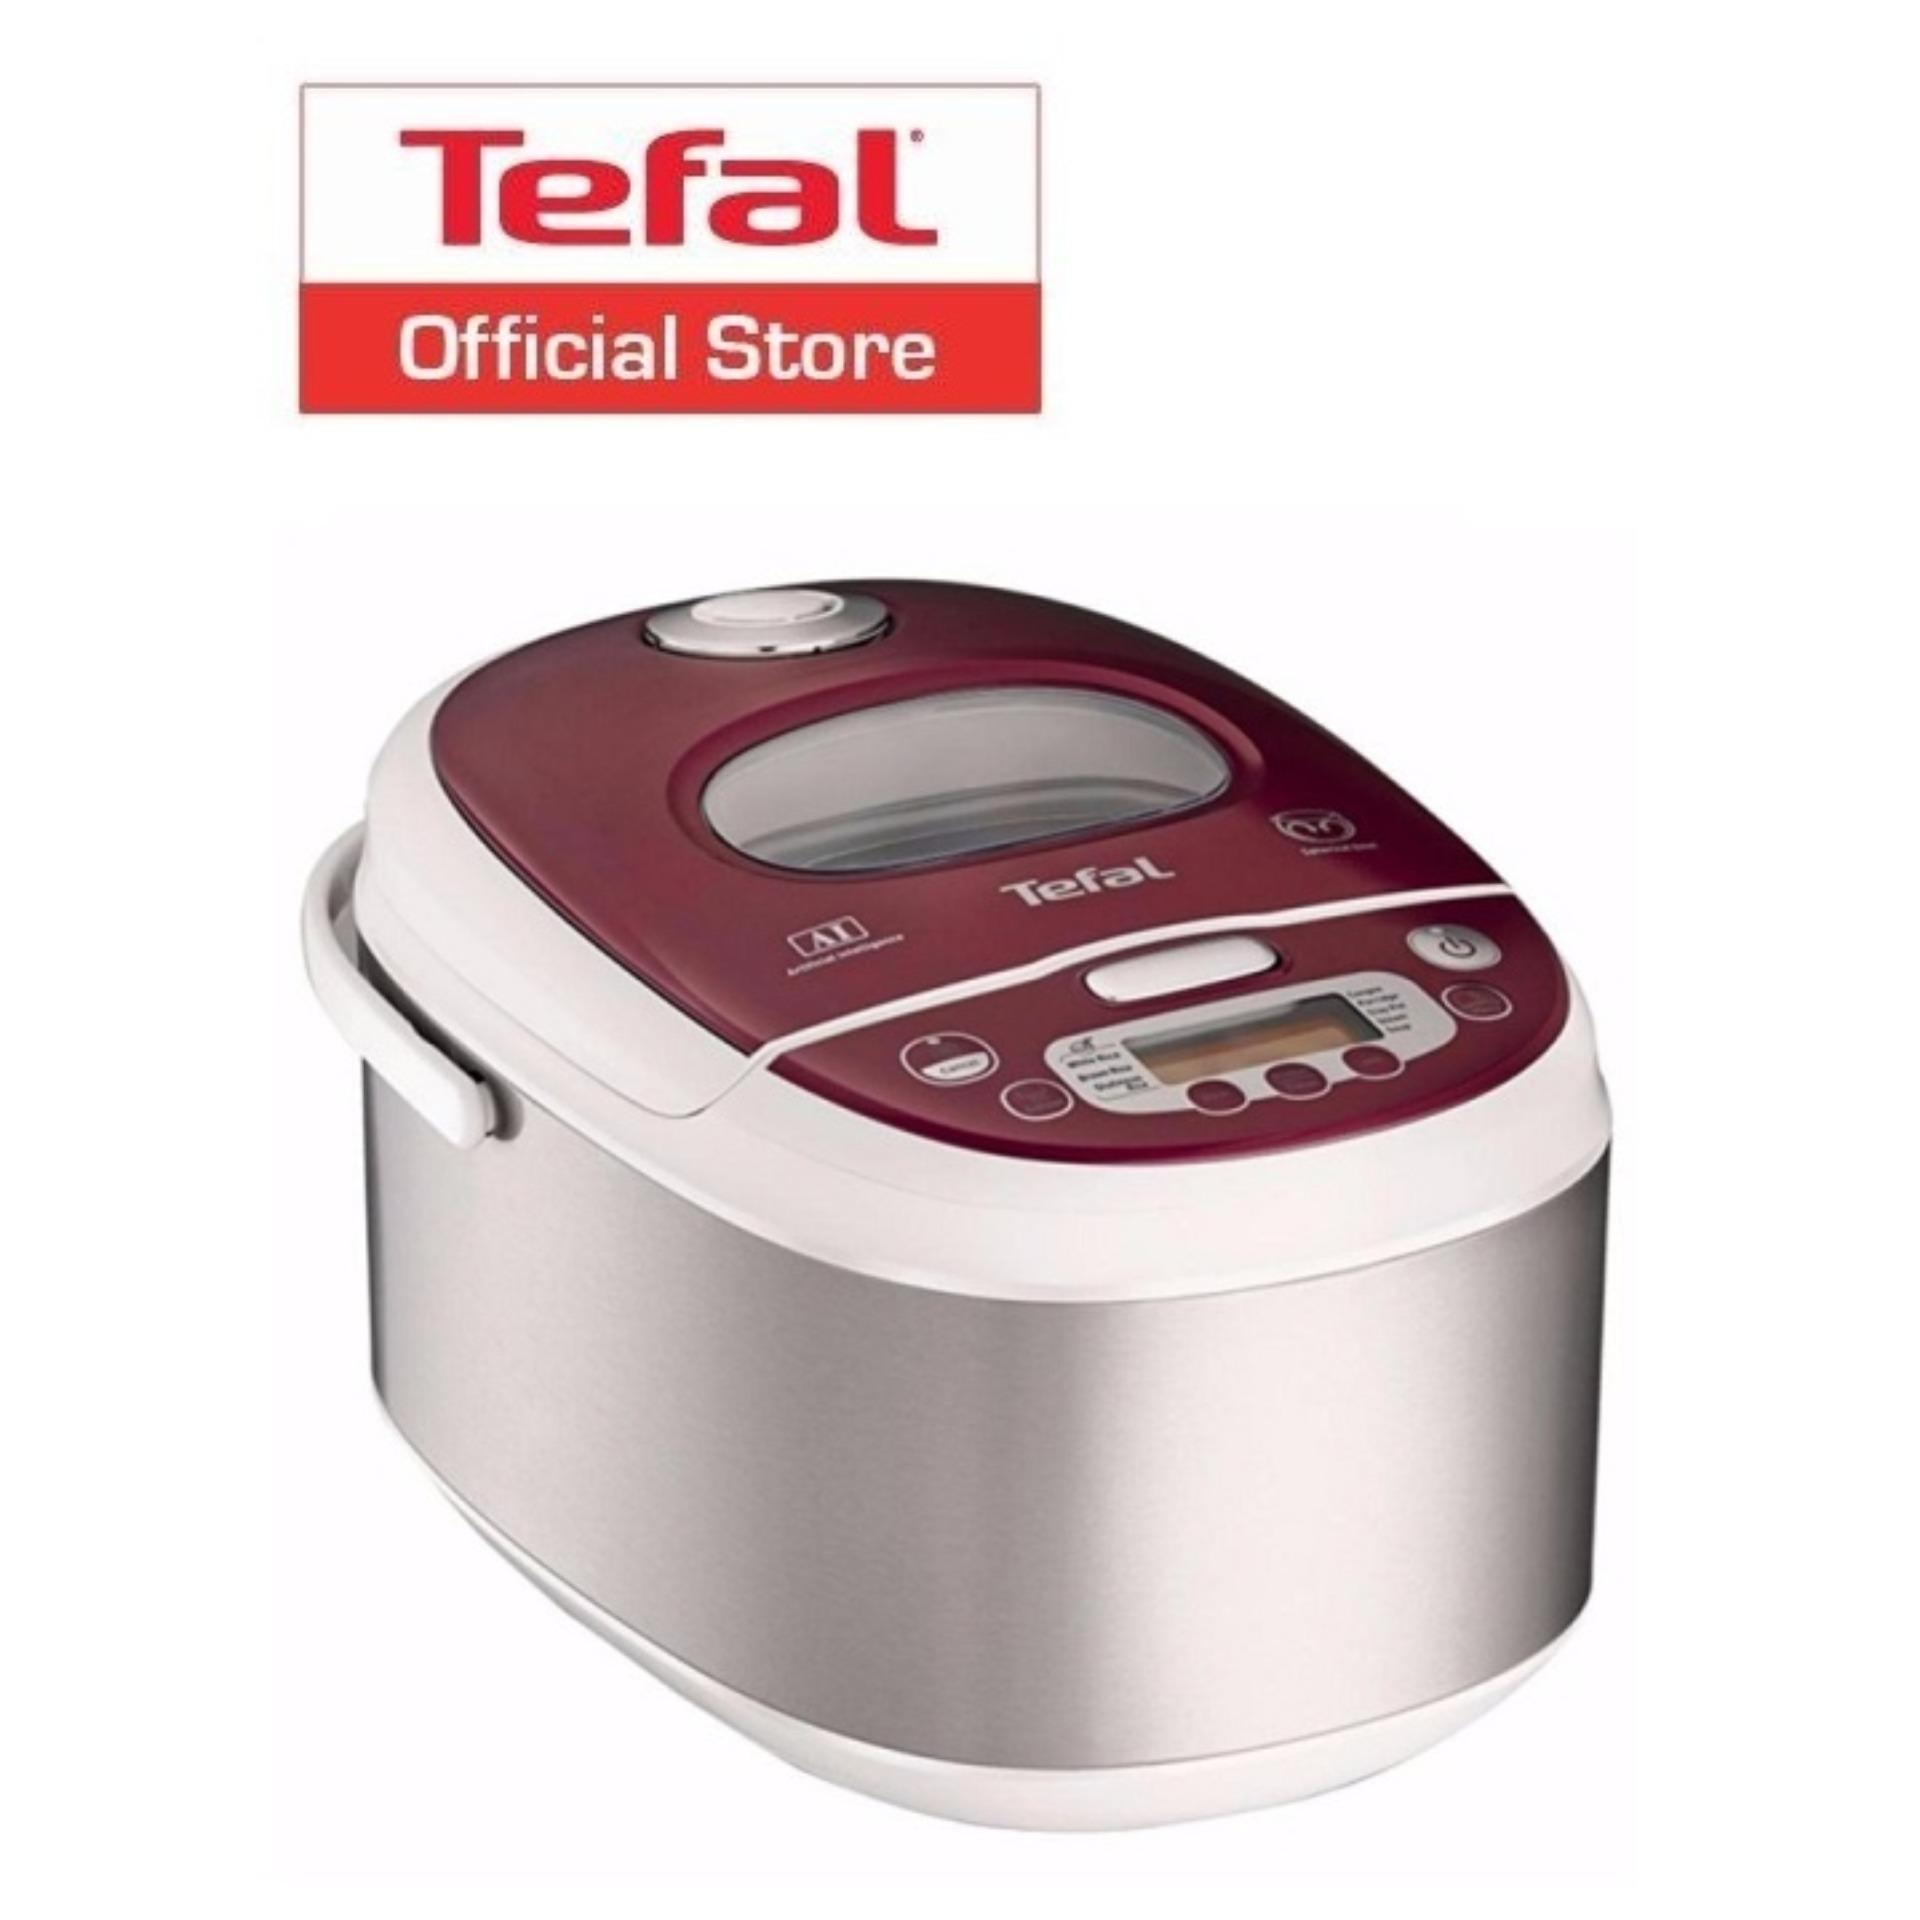 Sales Price Tefal Advanced 10 Program Fuzzy Logic Spherical Pot Rice Cooker 1 8L Rk8105